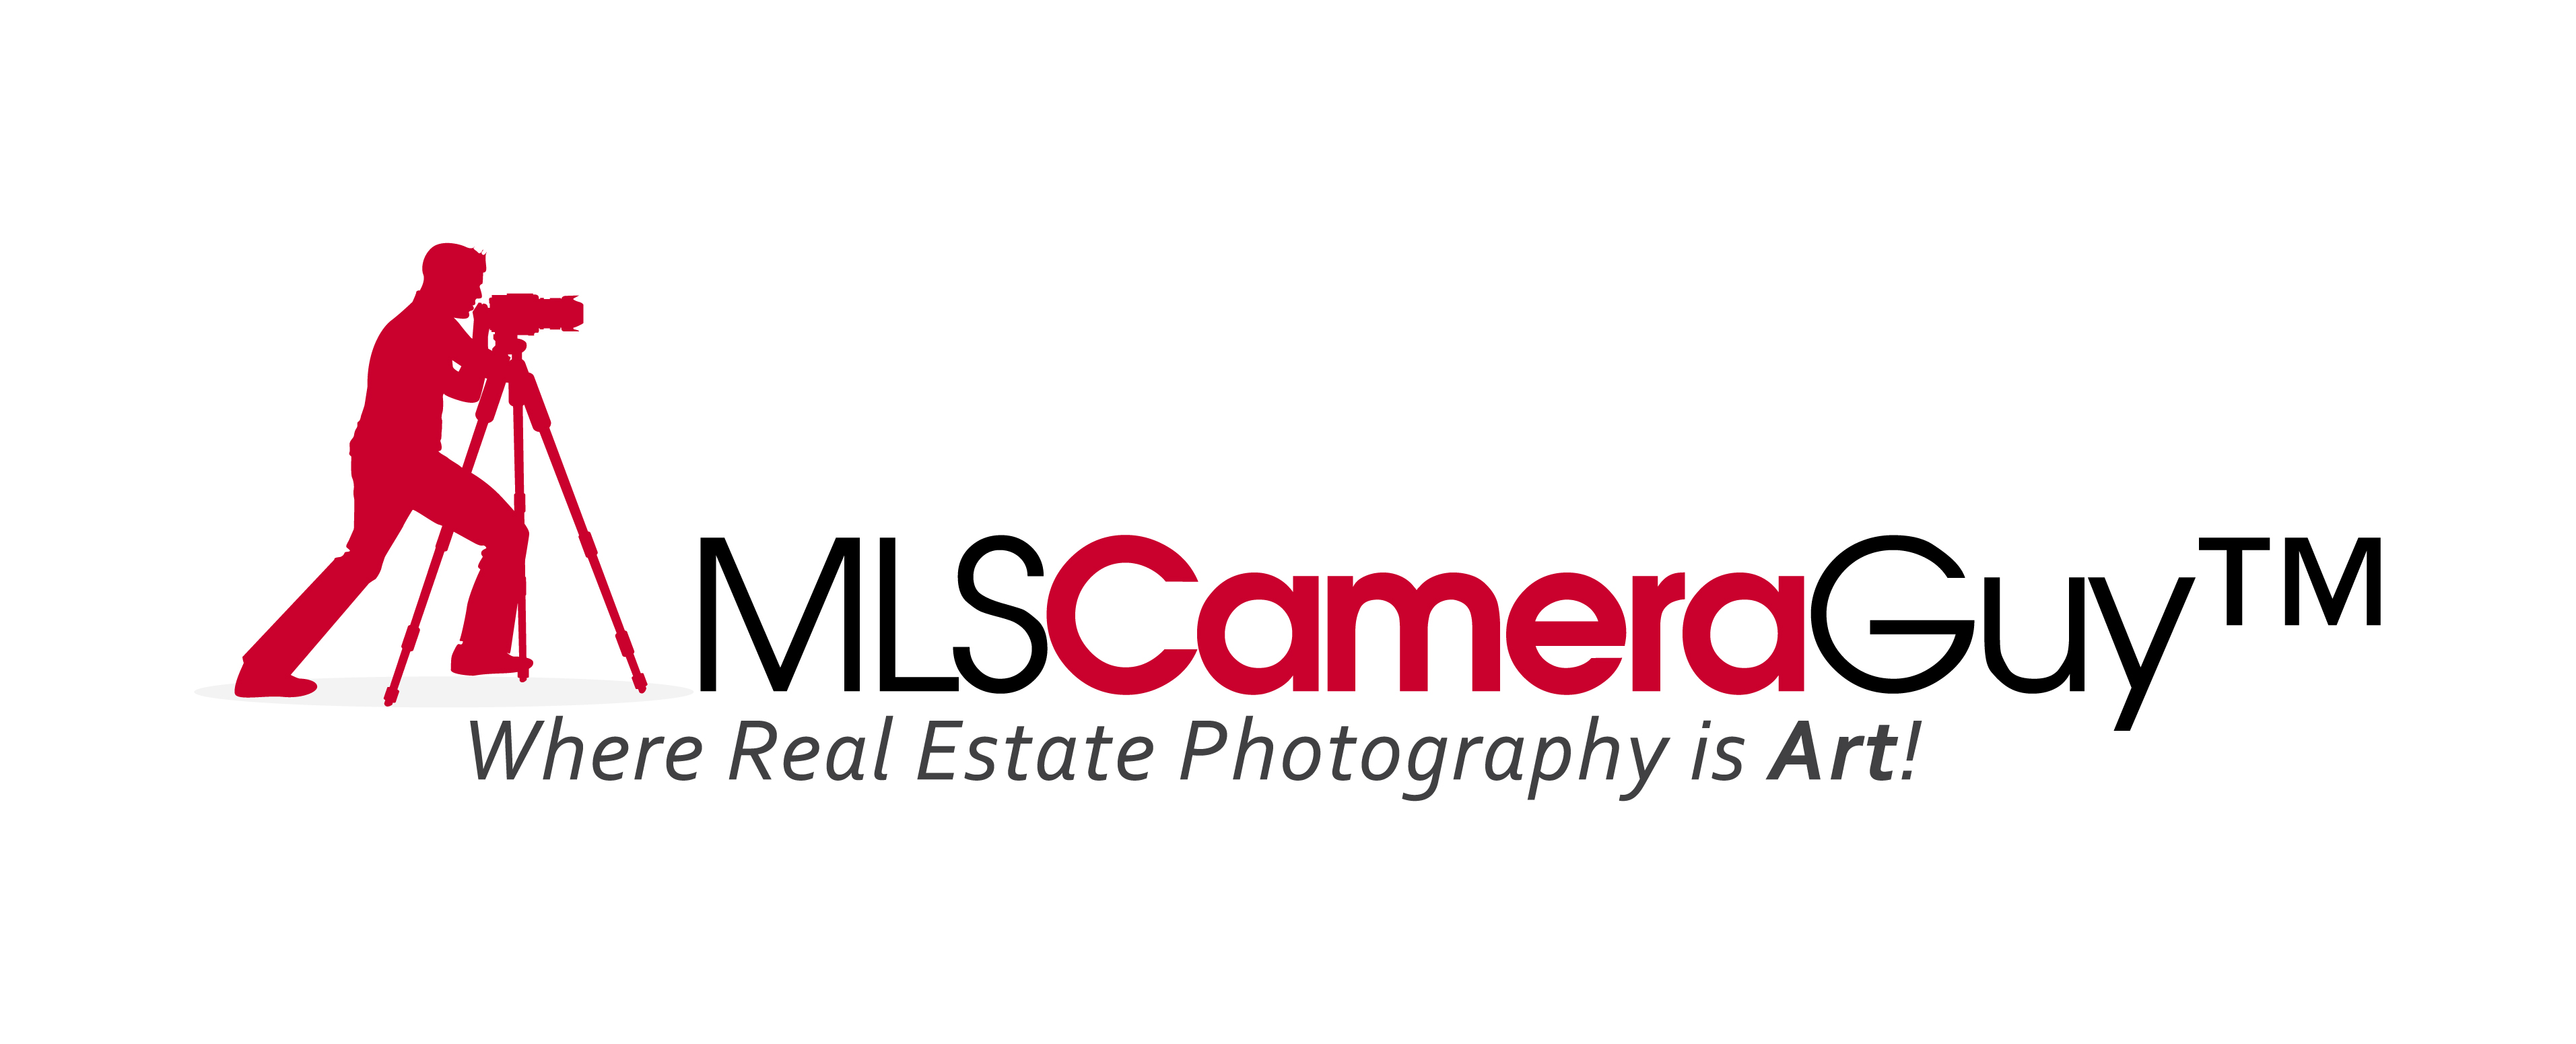 MLS Camera Guy logo